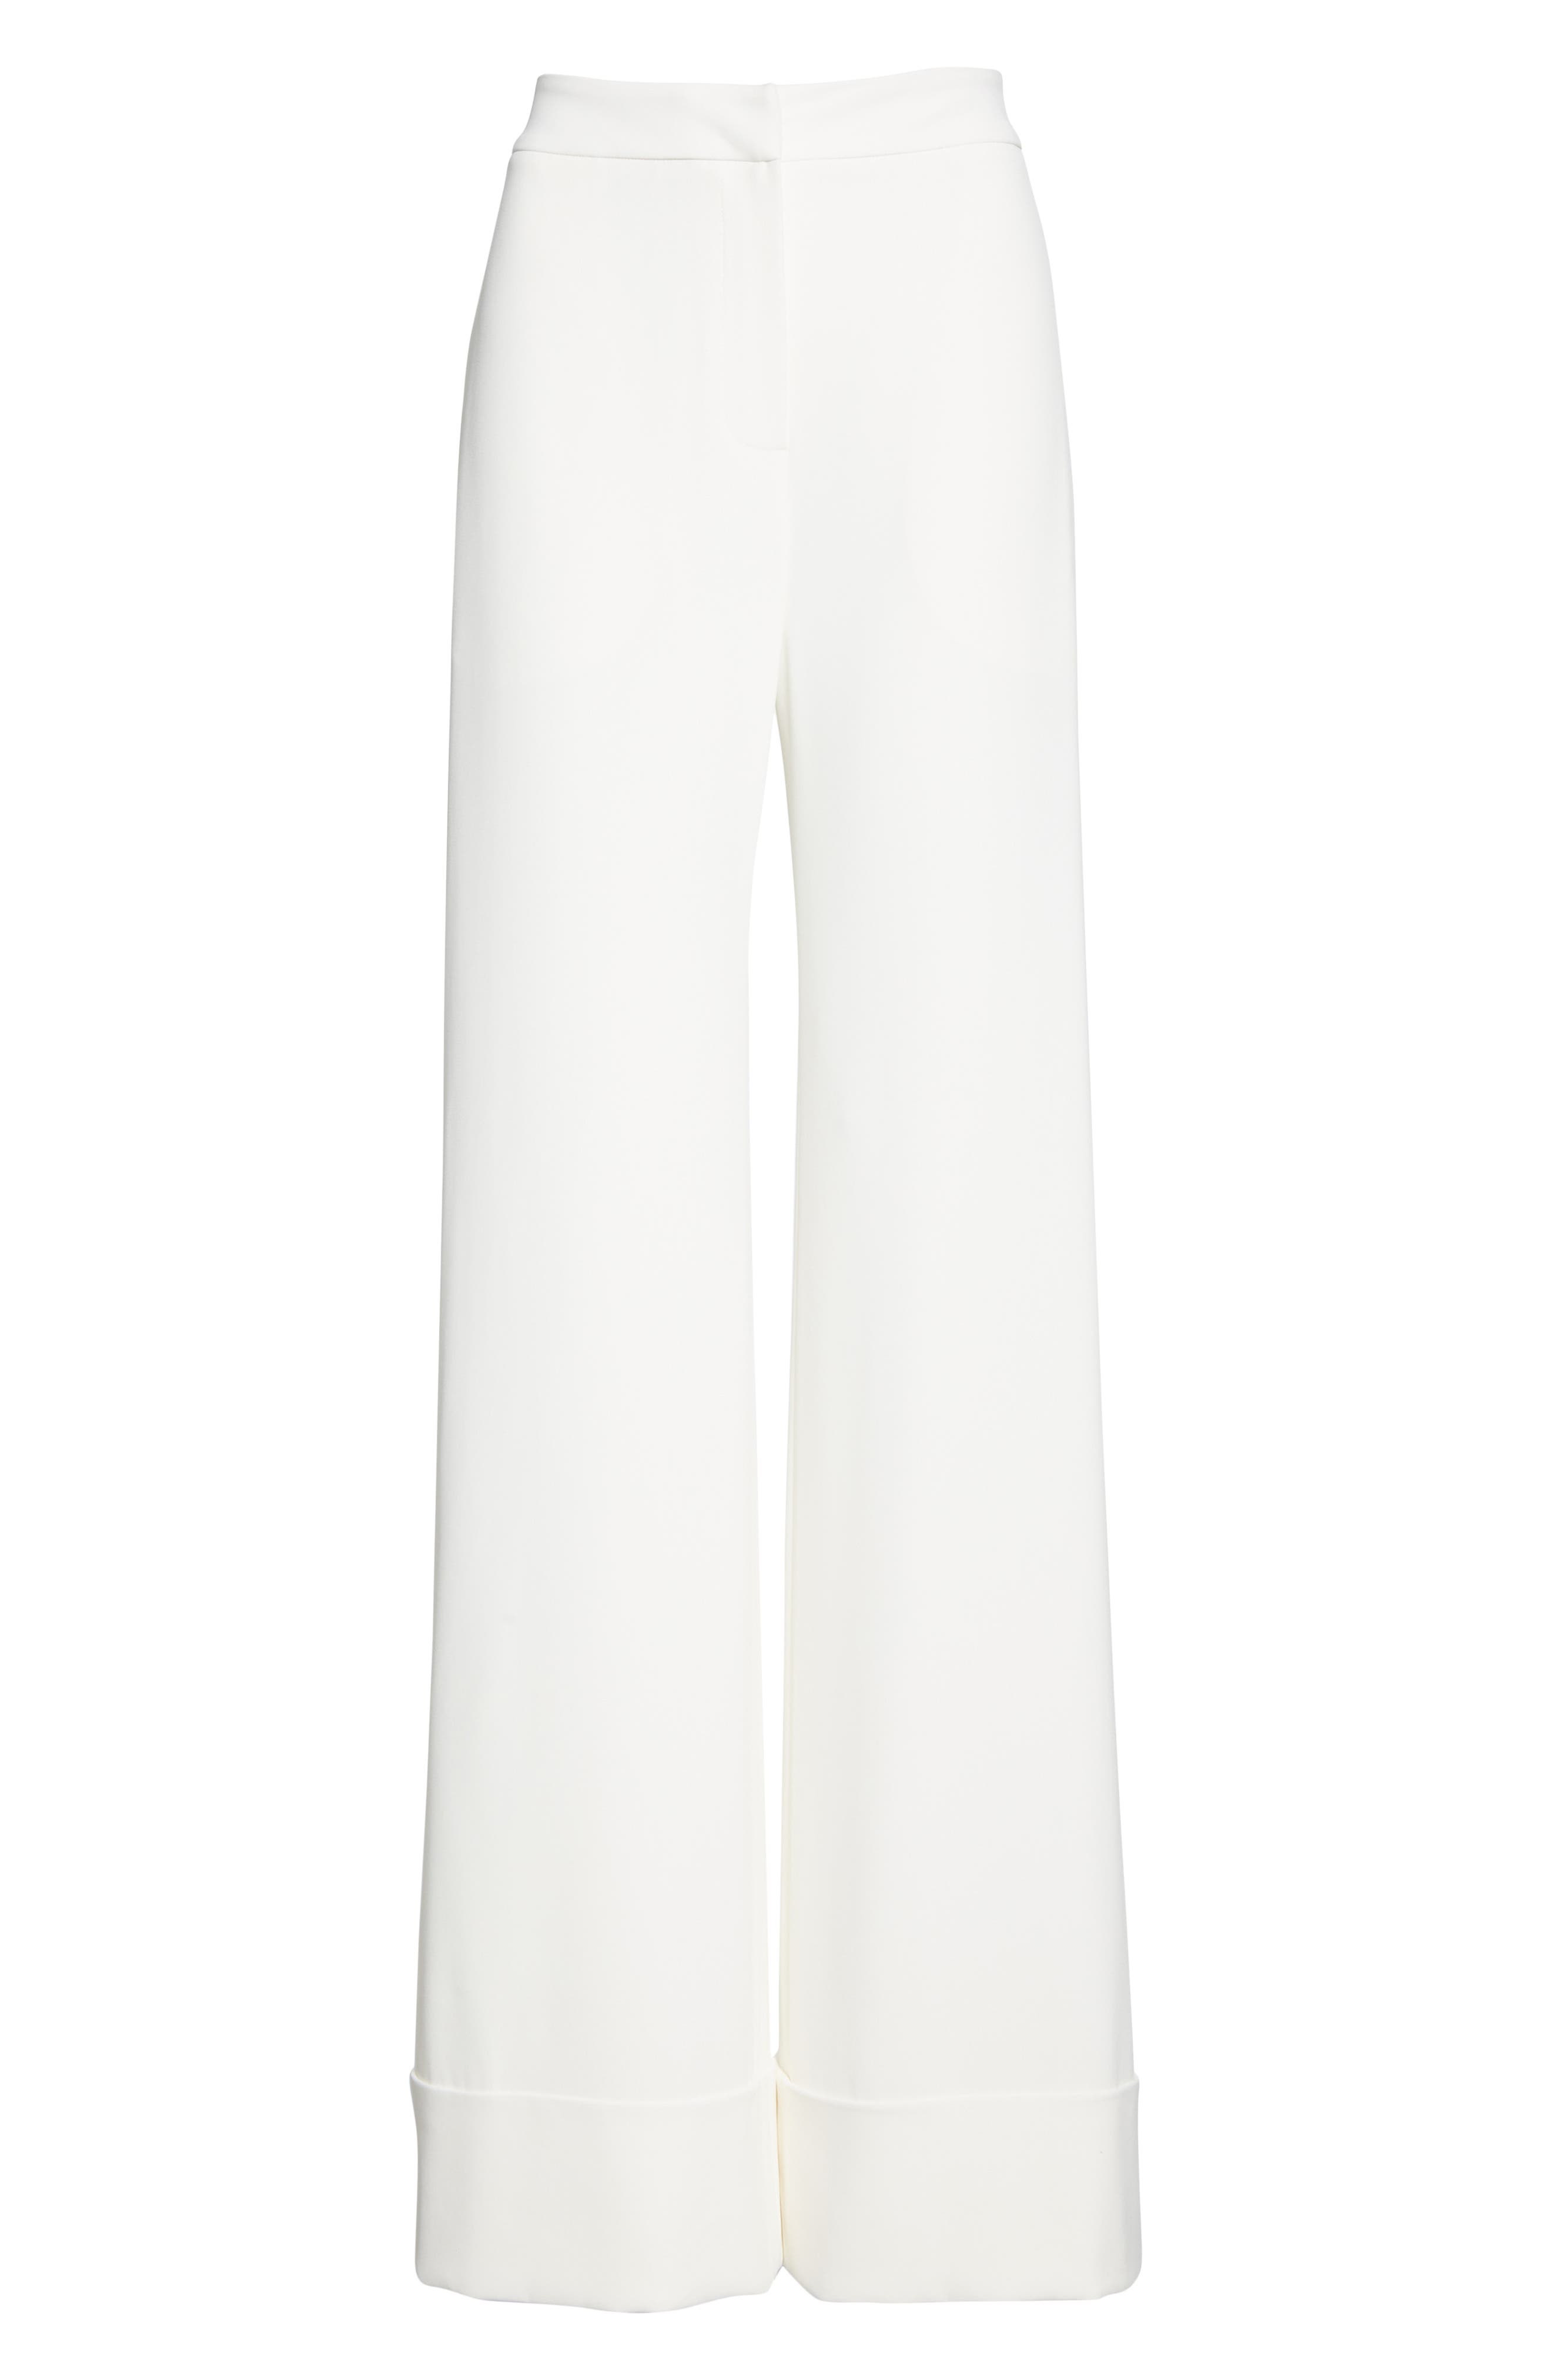 BRANDON MAXWELL, Wide Leg Cuff Pants, Alternate thumbnail 6, color, IVORY